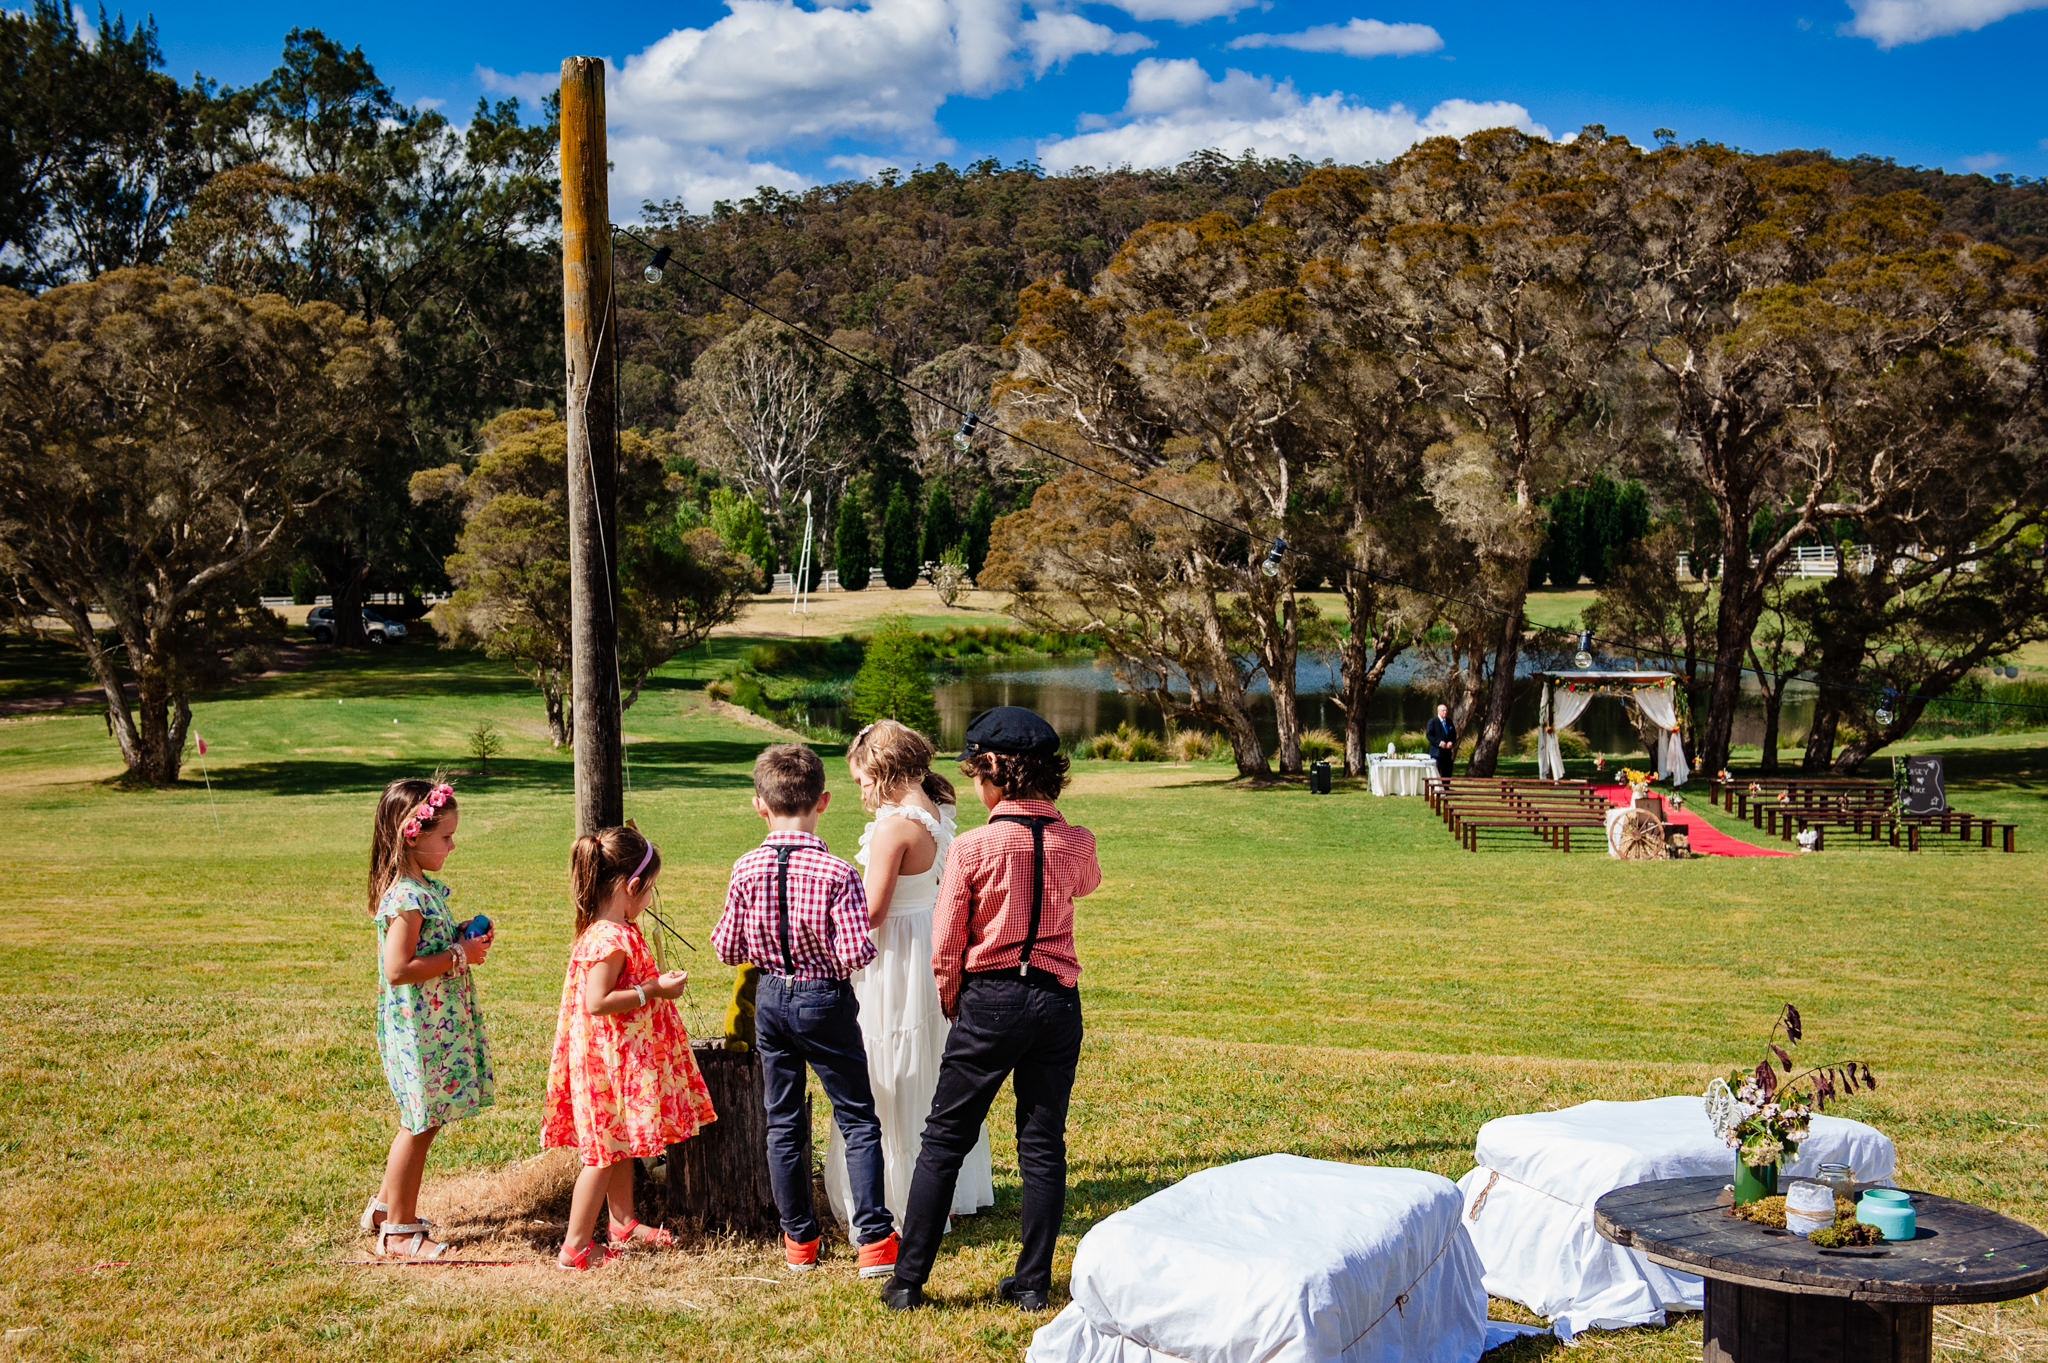 Kids waiting for wedding ceremony to begin at Redwood park Wollombi